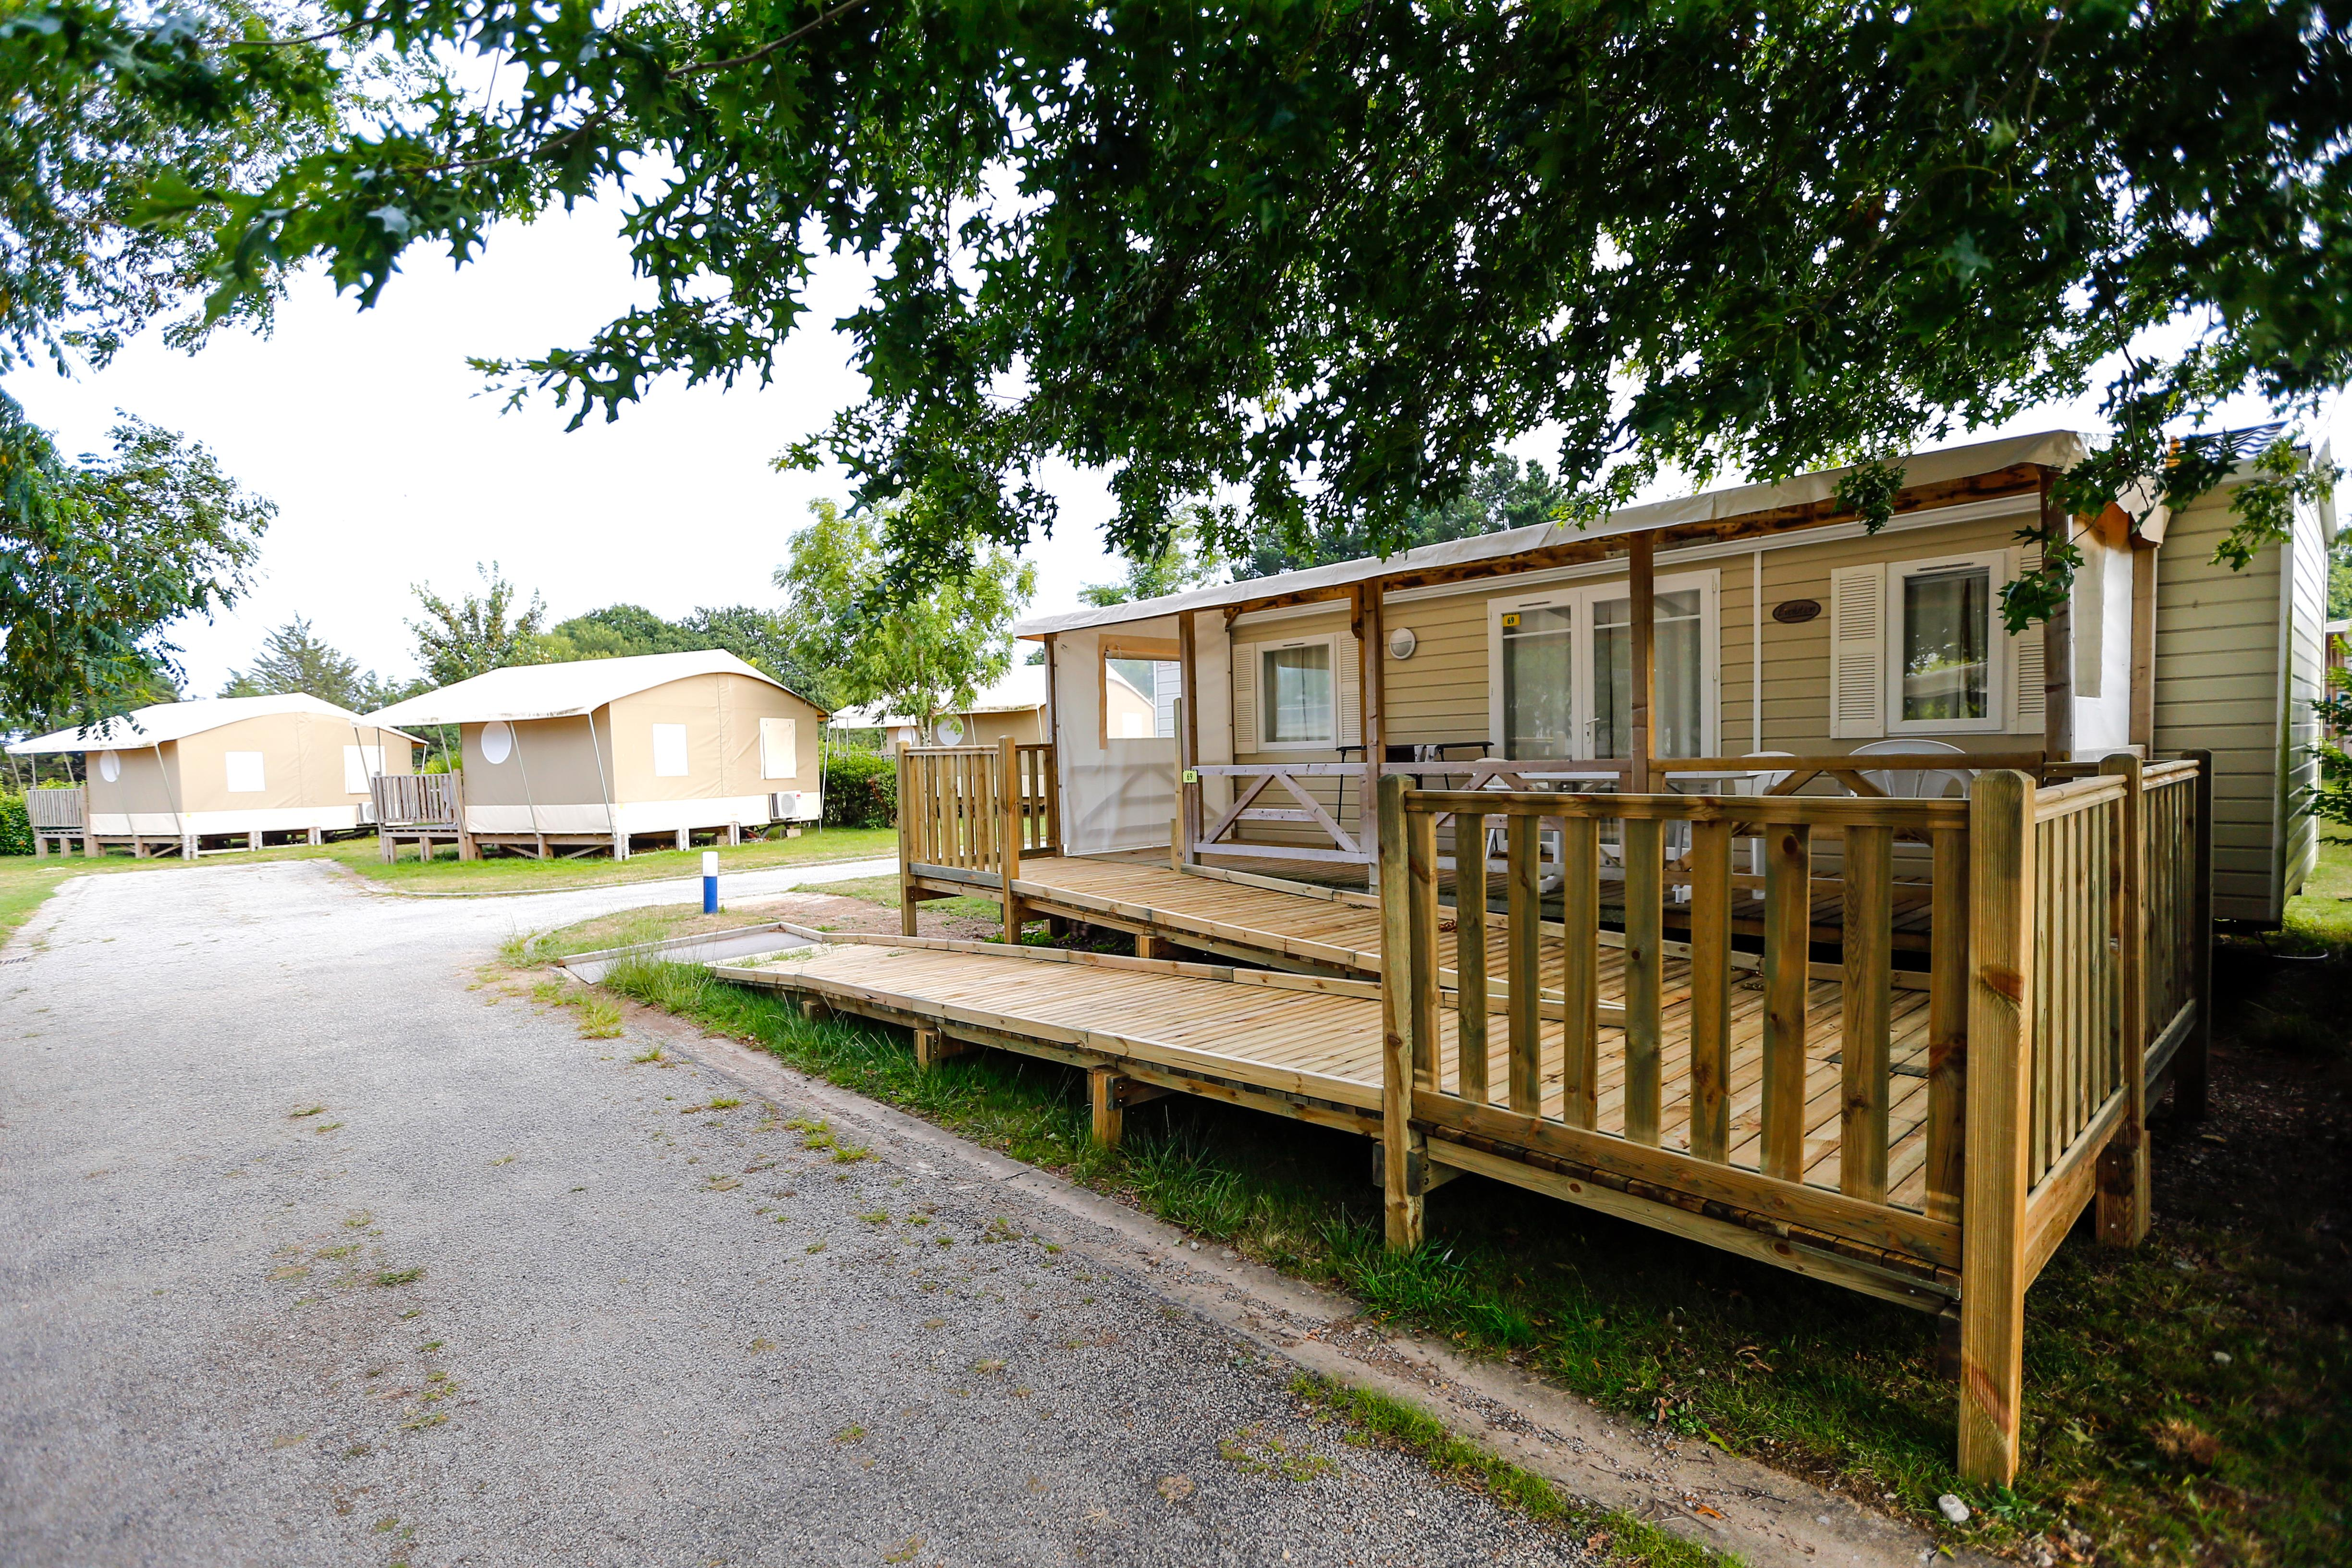 Locatifs - Mobil-Home Pmr 2 Chambres - Camping Campéole Clairefontaine